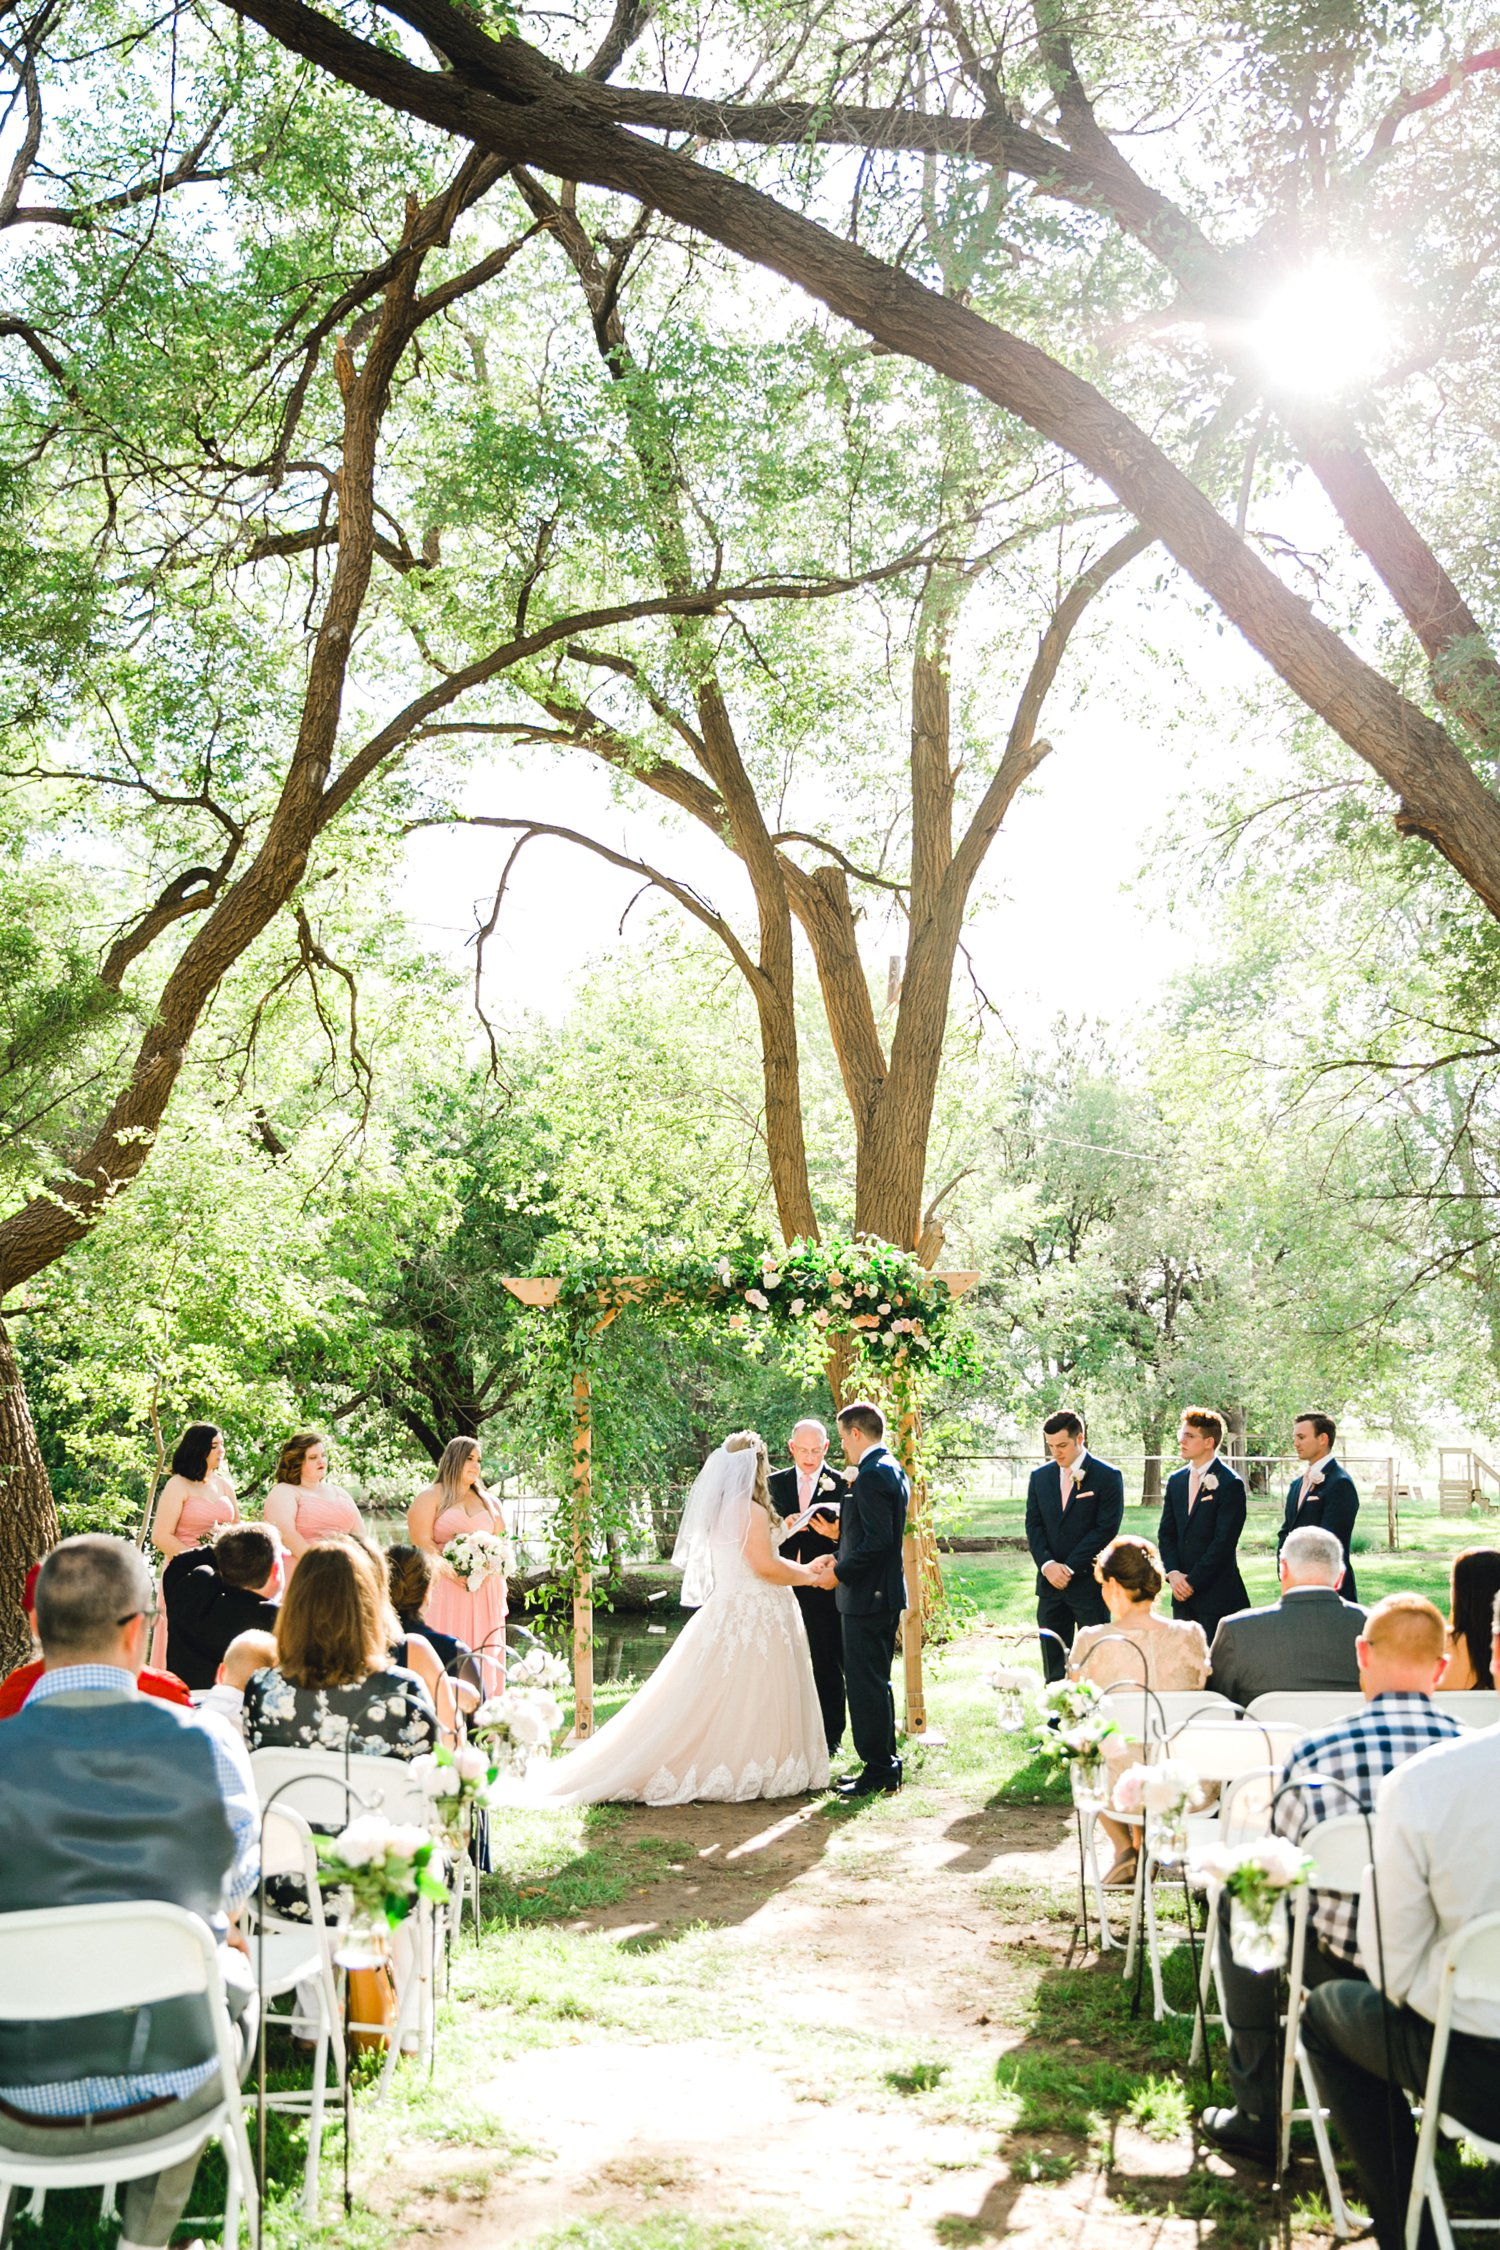 SARAH_AND_GEOFFREY_SHARP_SPIRIT_RANCH_WEDDING_ALLEEJ_LUBBOCK_TX_0064.jpg